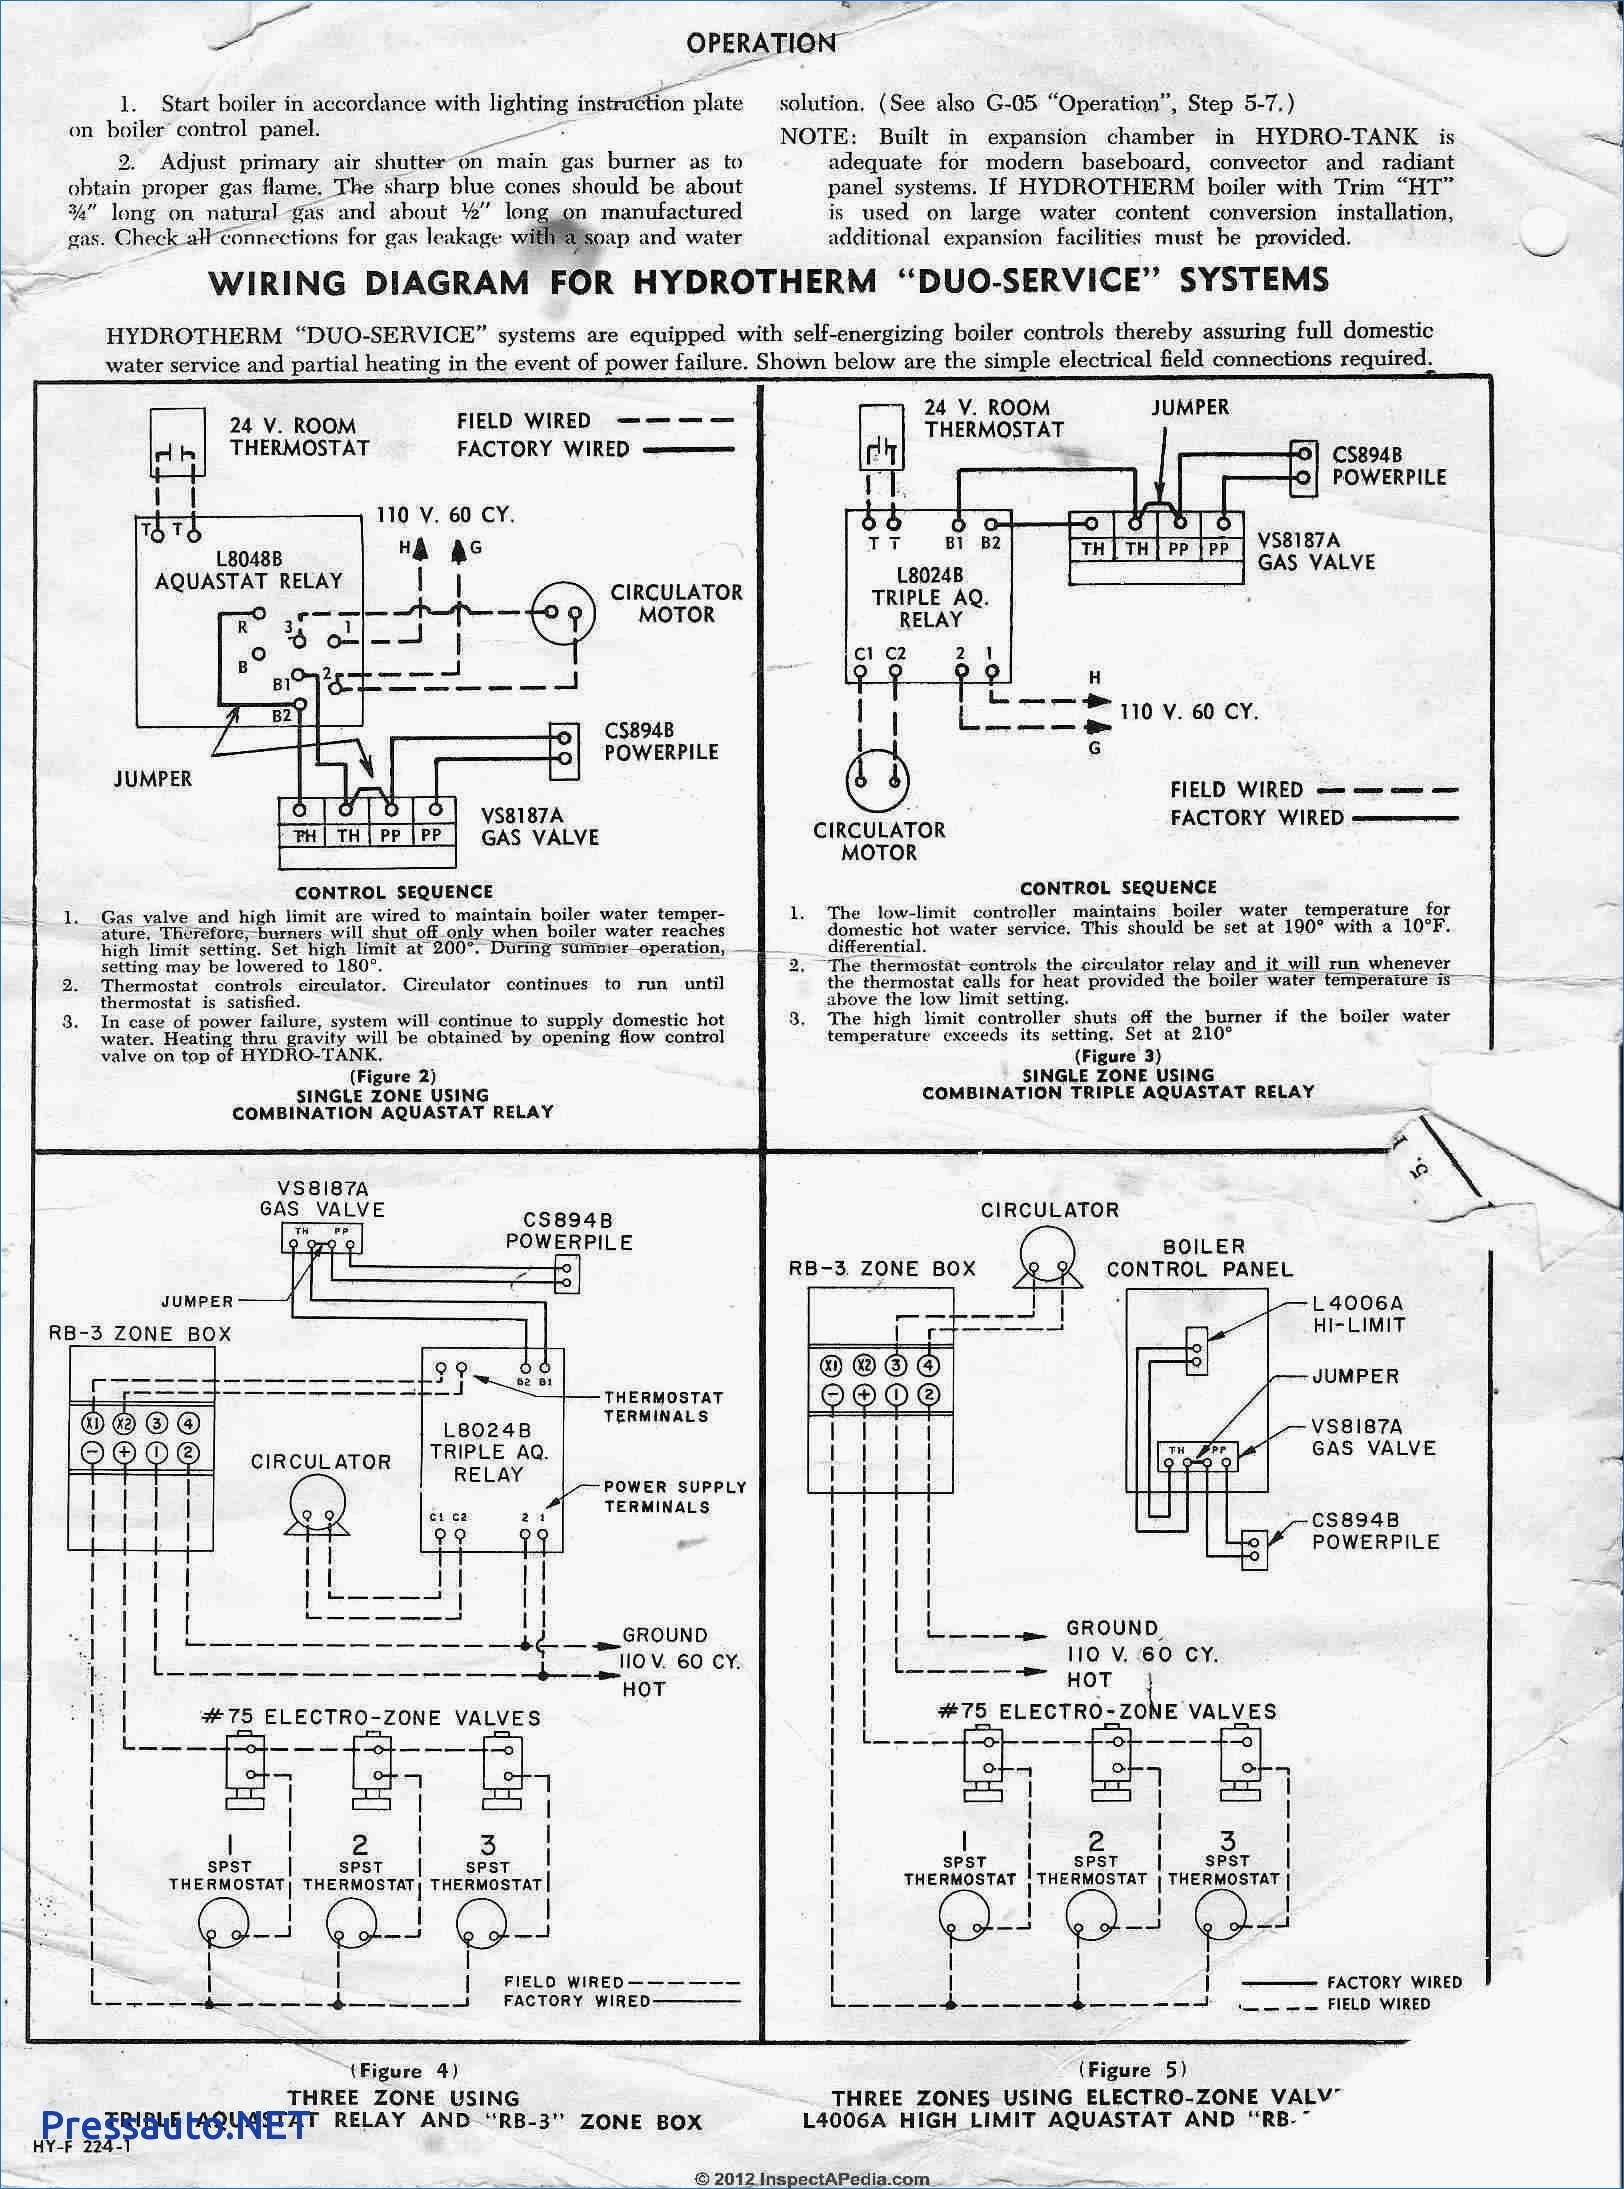 millivolt gas valve wiring diagram Download-Gas solenoid Valve Wiring Diagram New Fine White Rodgers Gas Valve Wiring Diagram Electrical 3-c